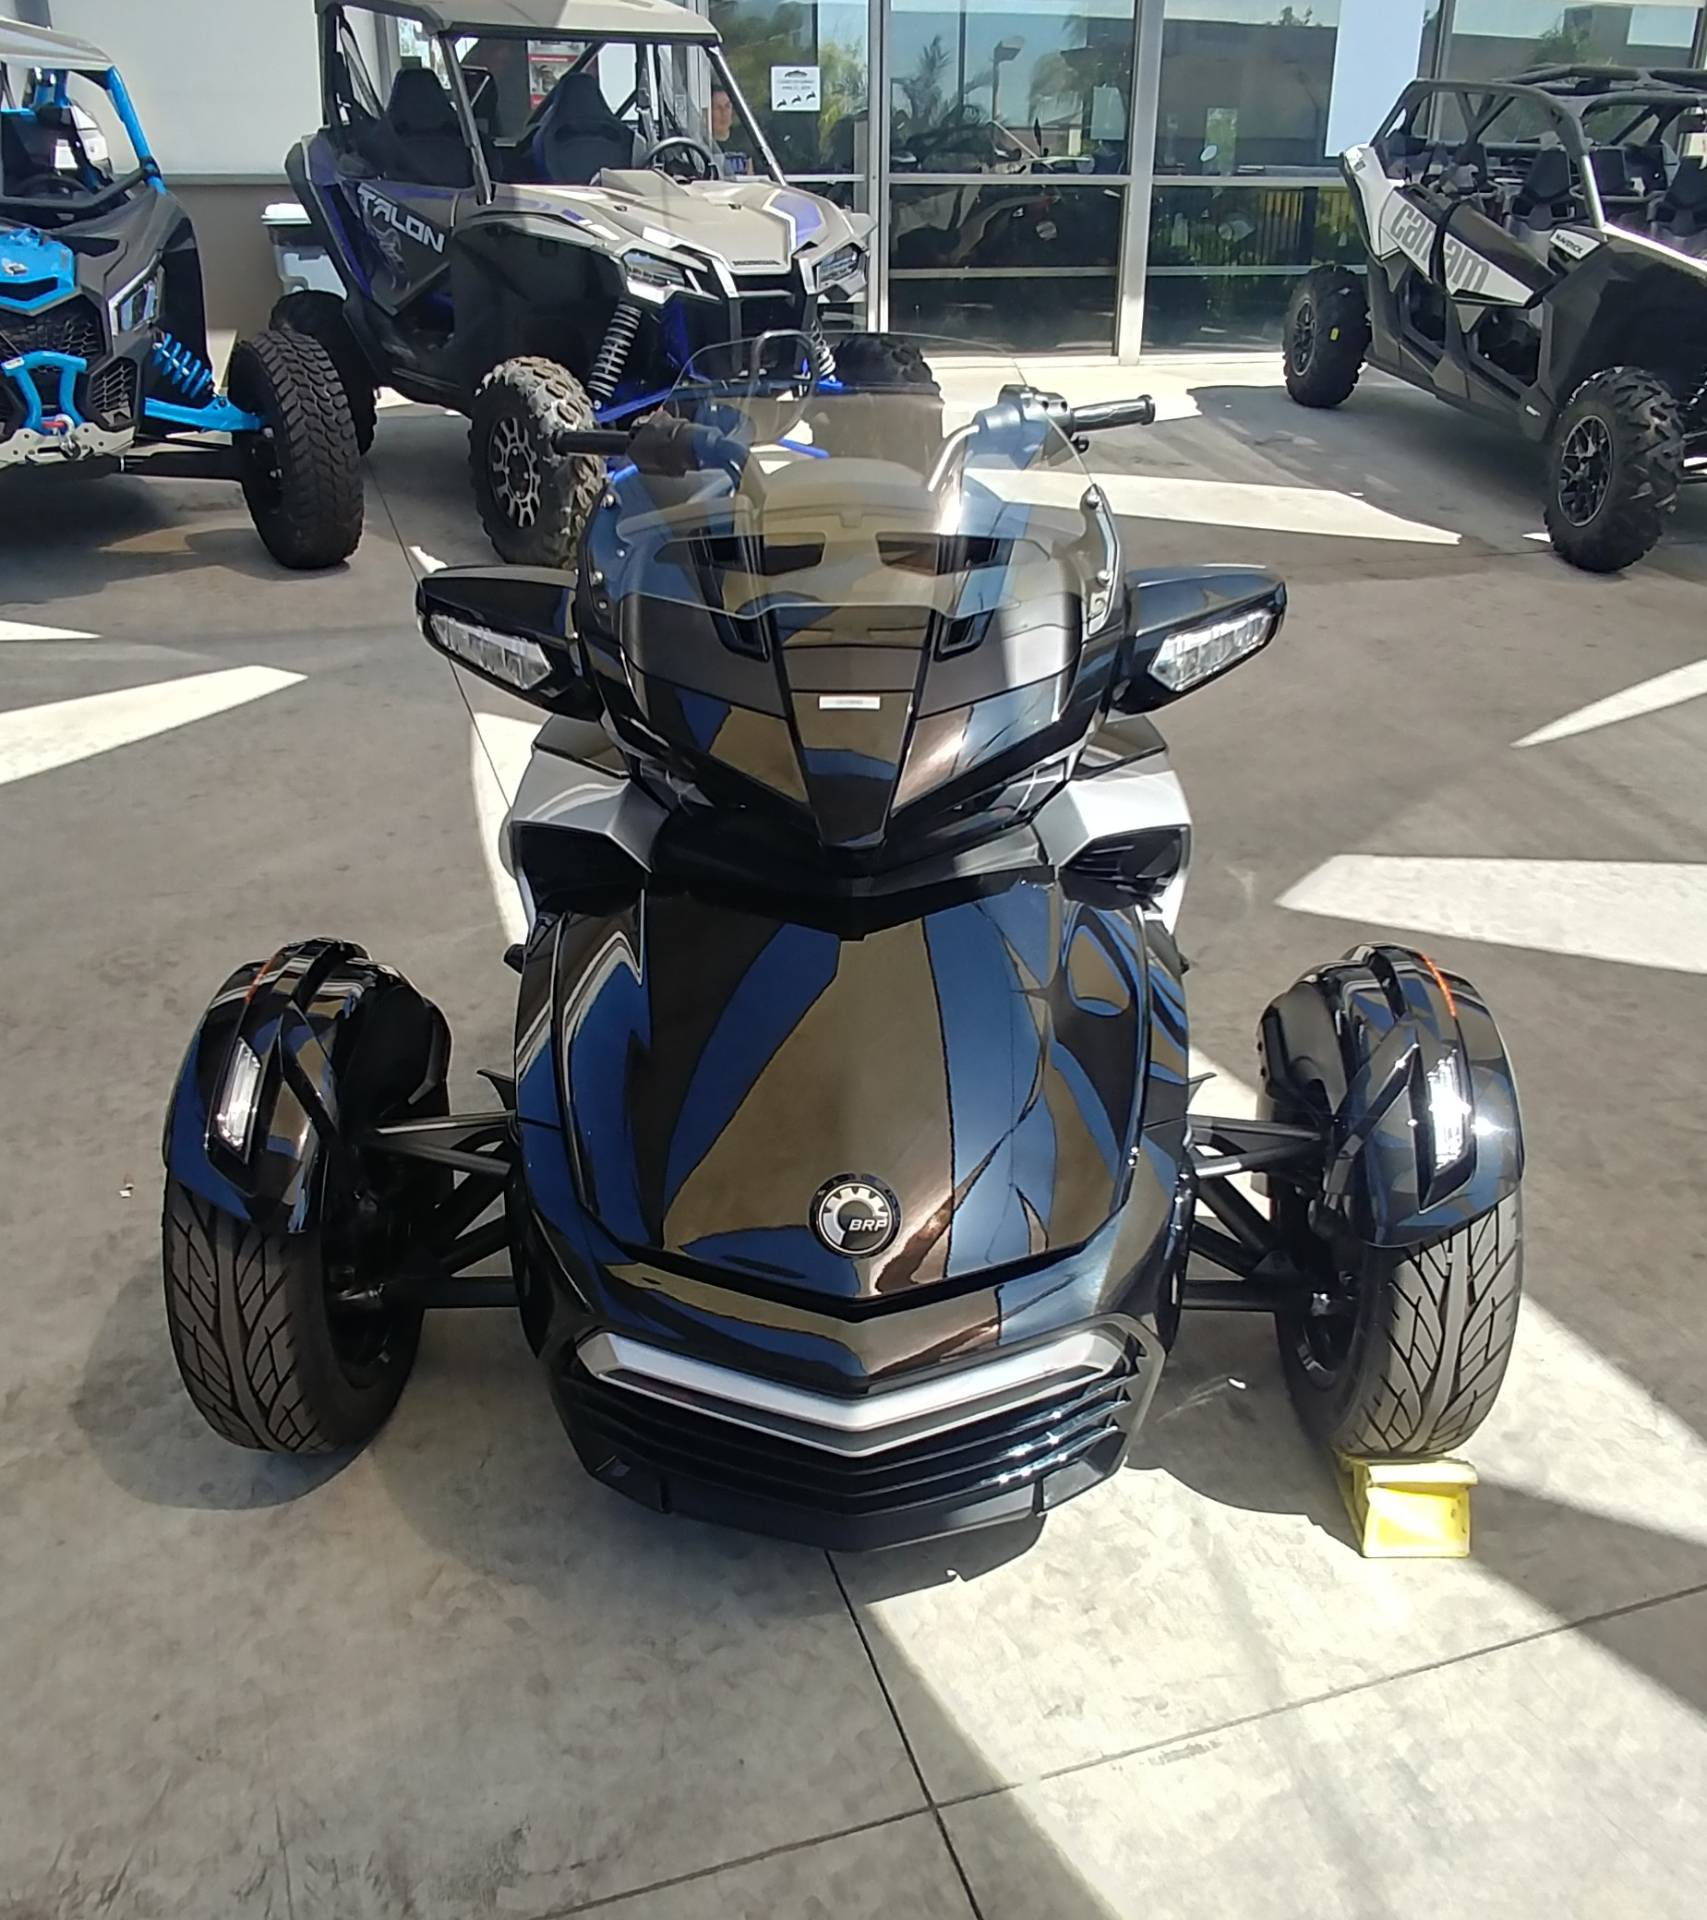 2016 Can-Am Spyder F3-T SE6 w/ Audio System in Ontario, California - Photo 4